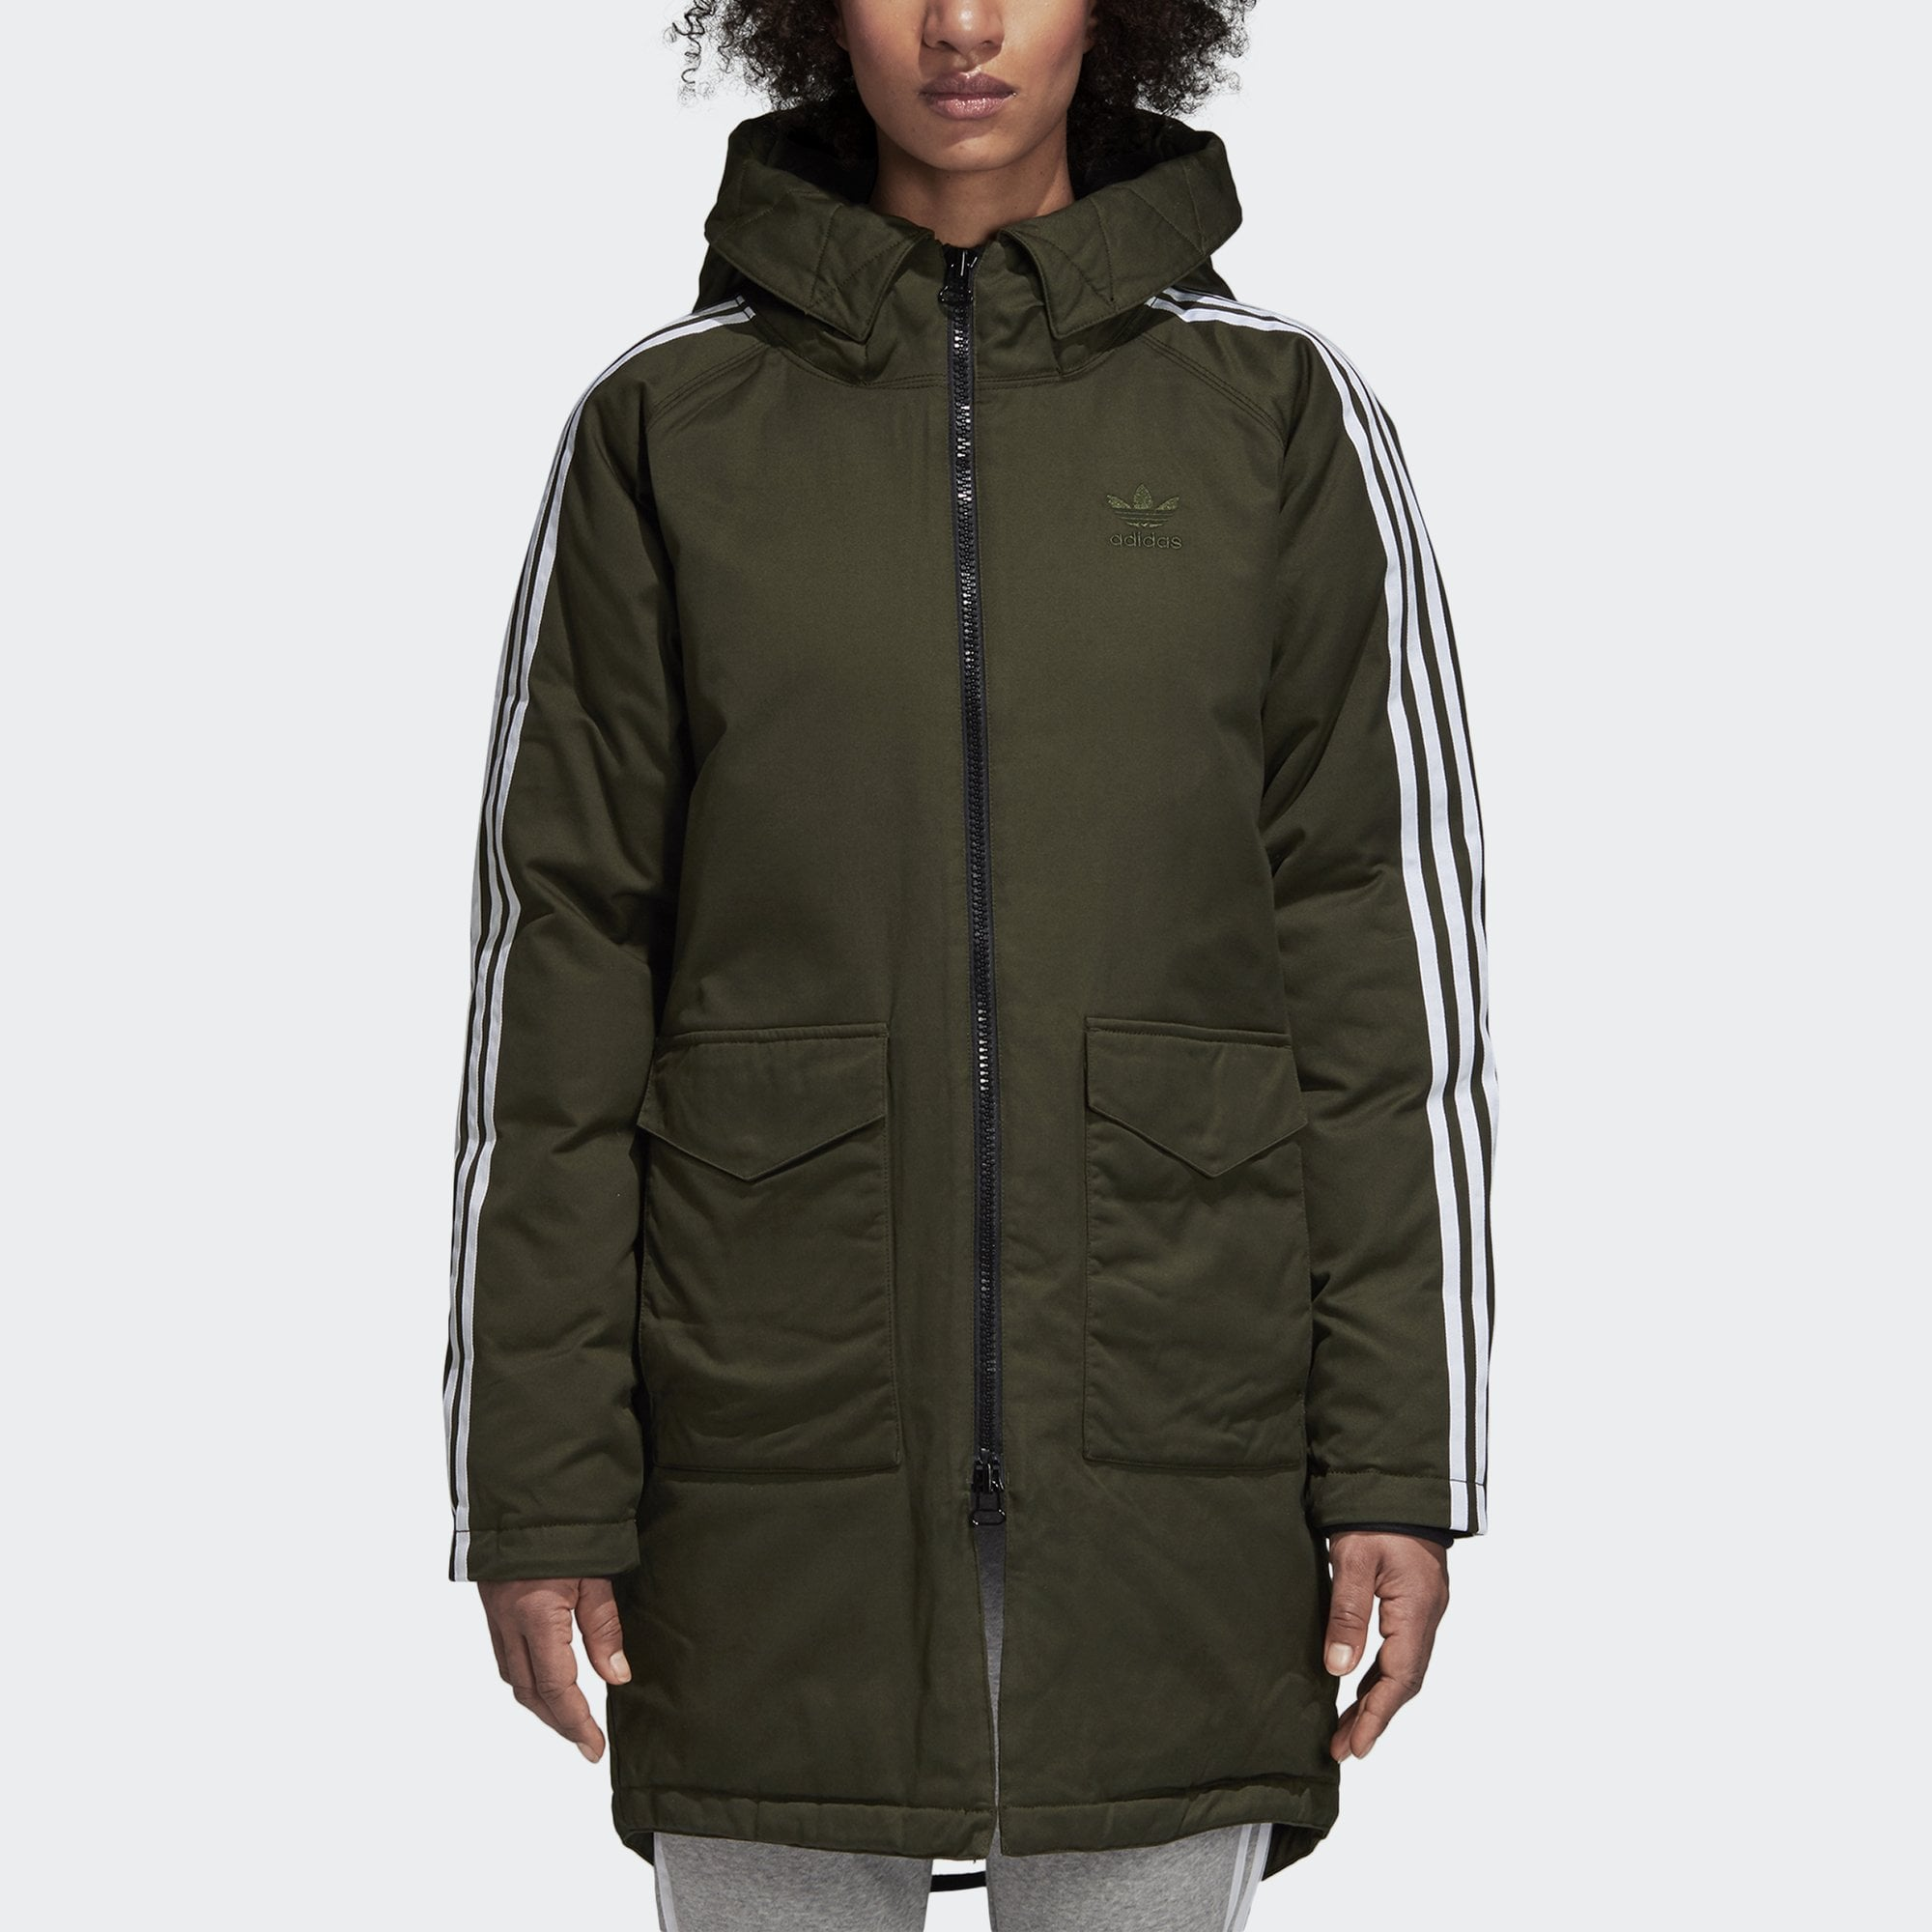 Parity > adidas parka jacket womens, Up to 66% OFF